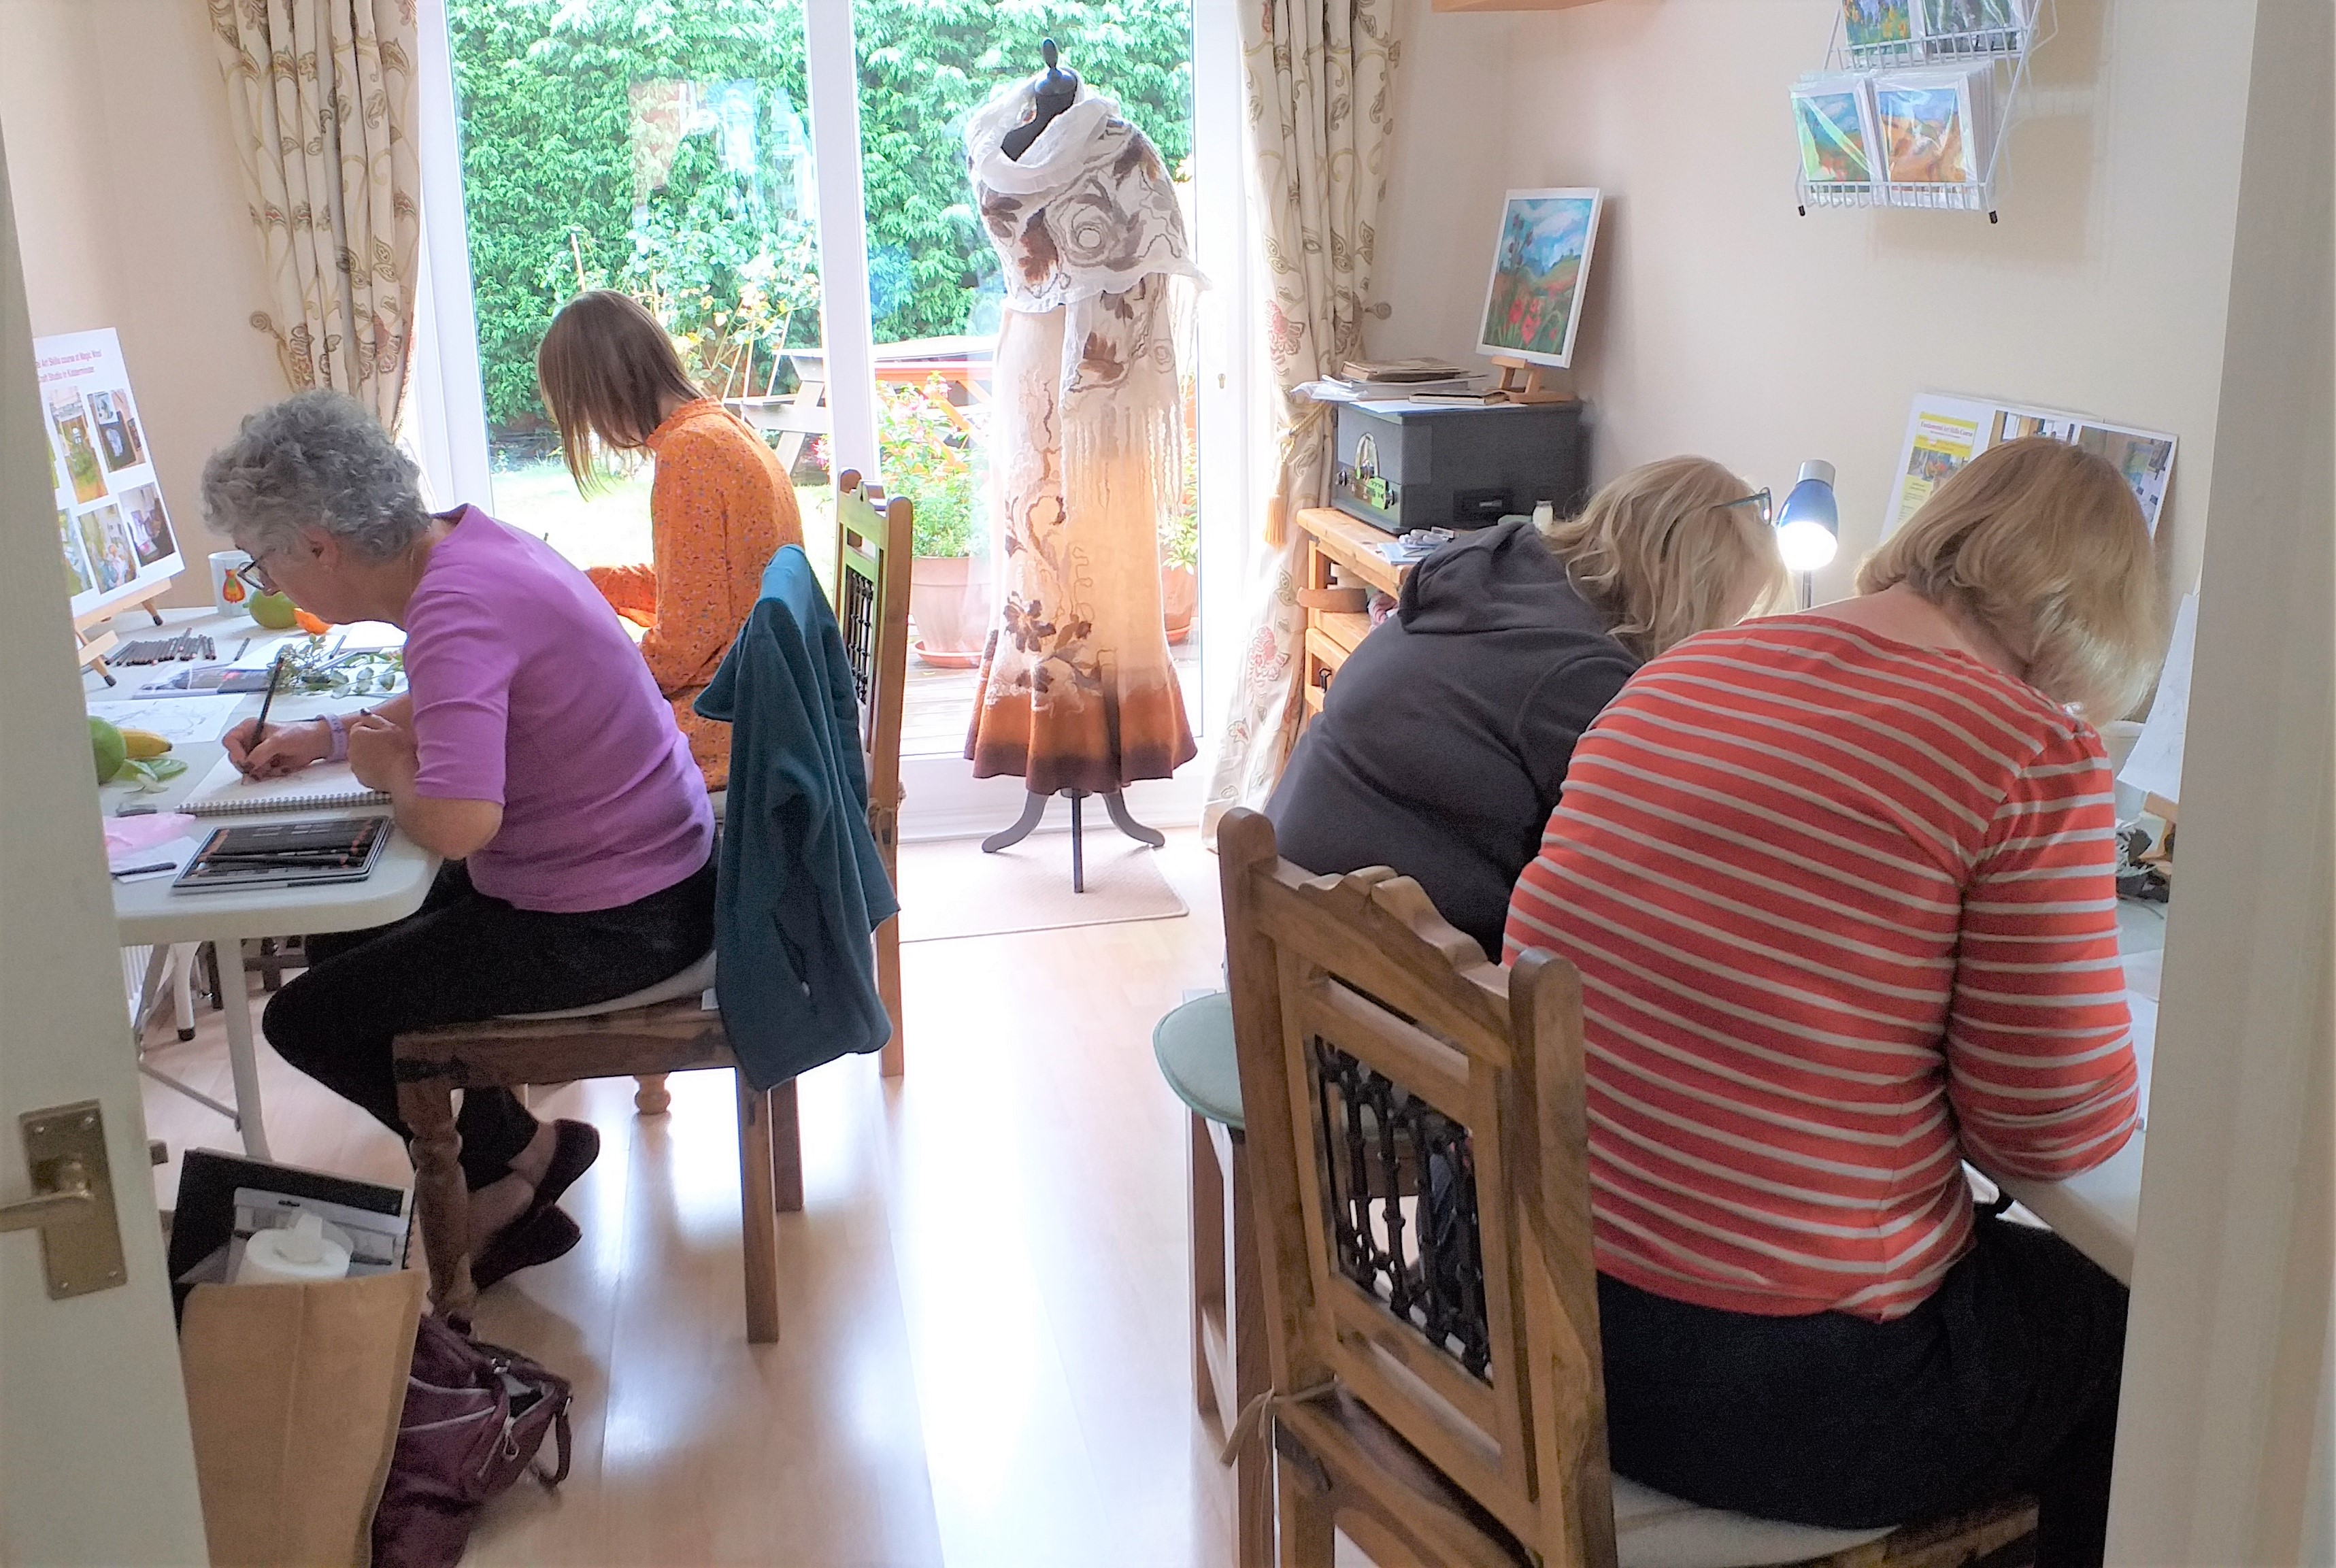 Students learning how to draw at Raya's Art classes in Kidderminster, Worcestershire